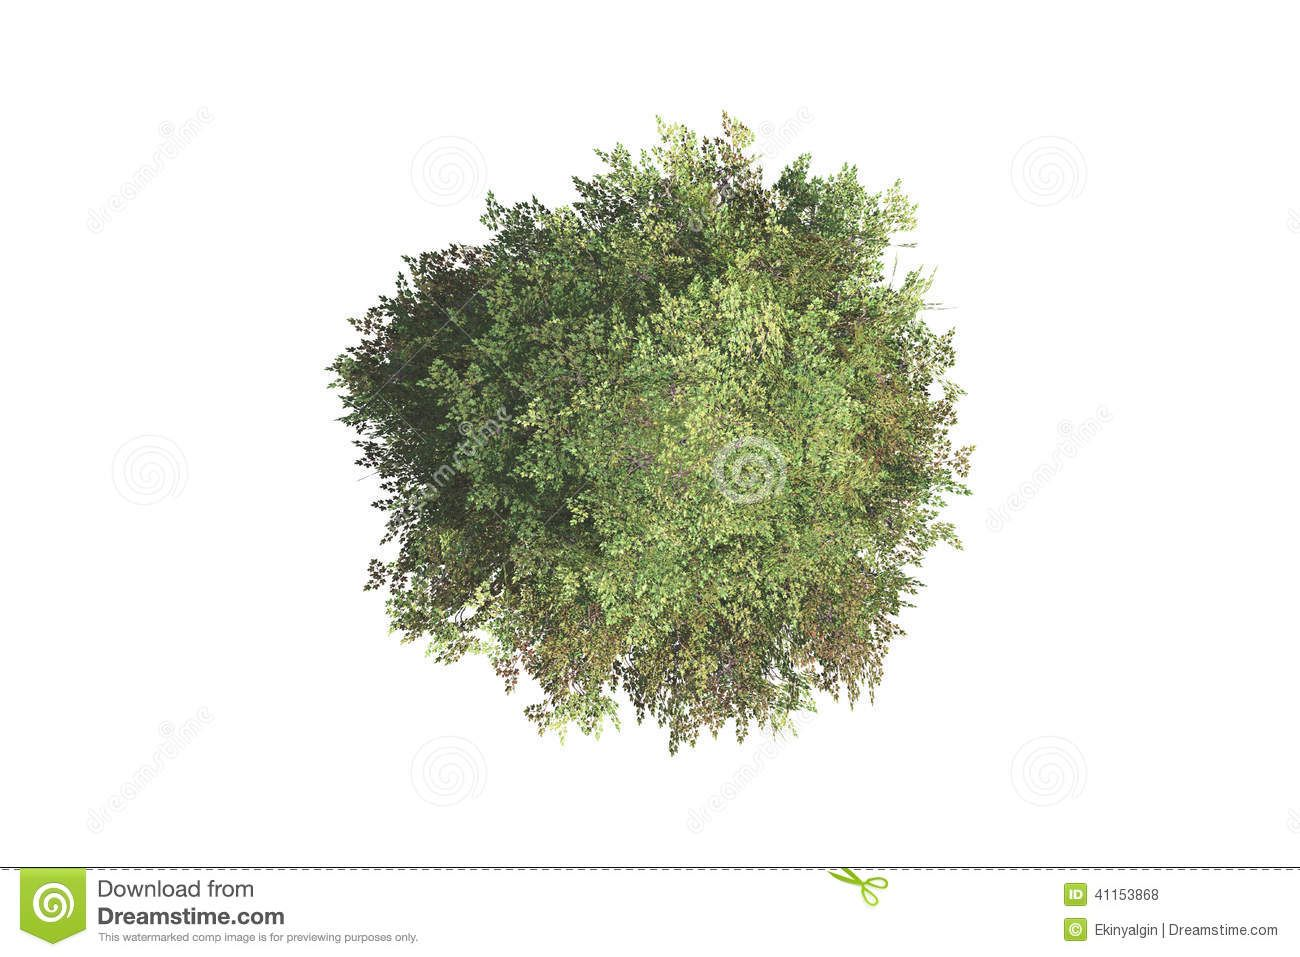 Top view plants 02 2d plant entourage for architecture - Top View Tree Green Natural Your Landscape Designs